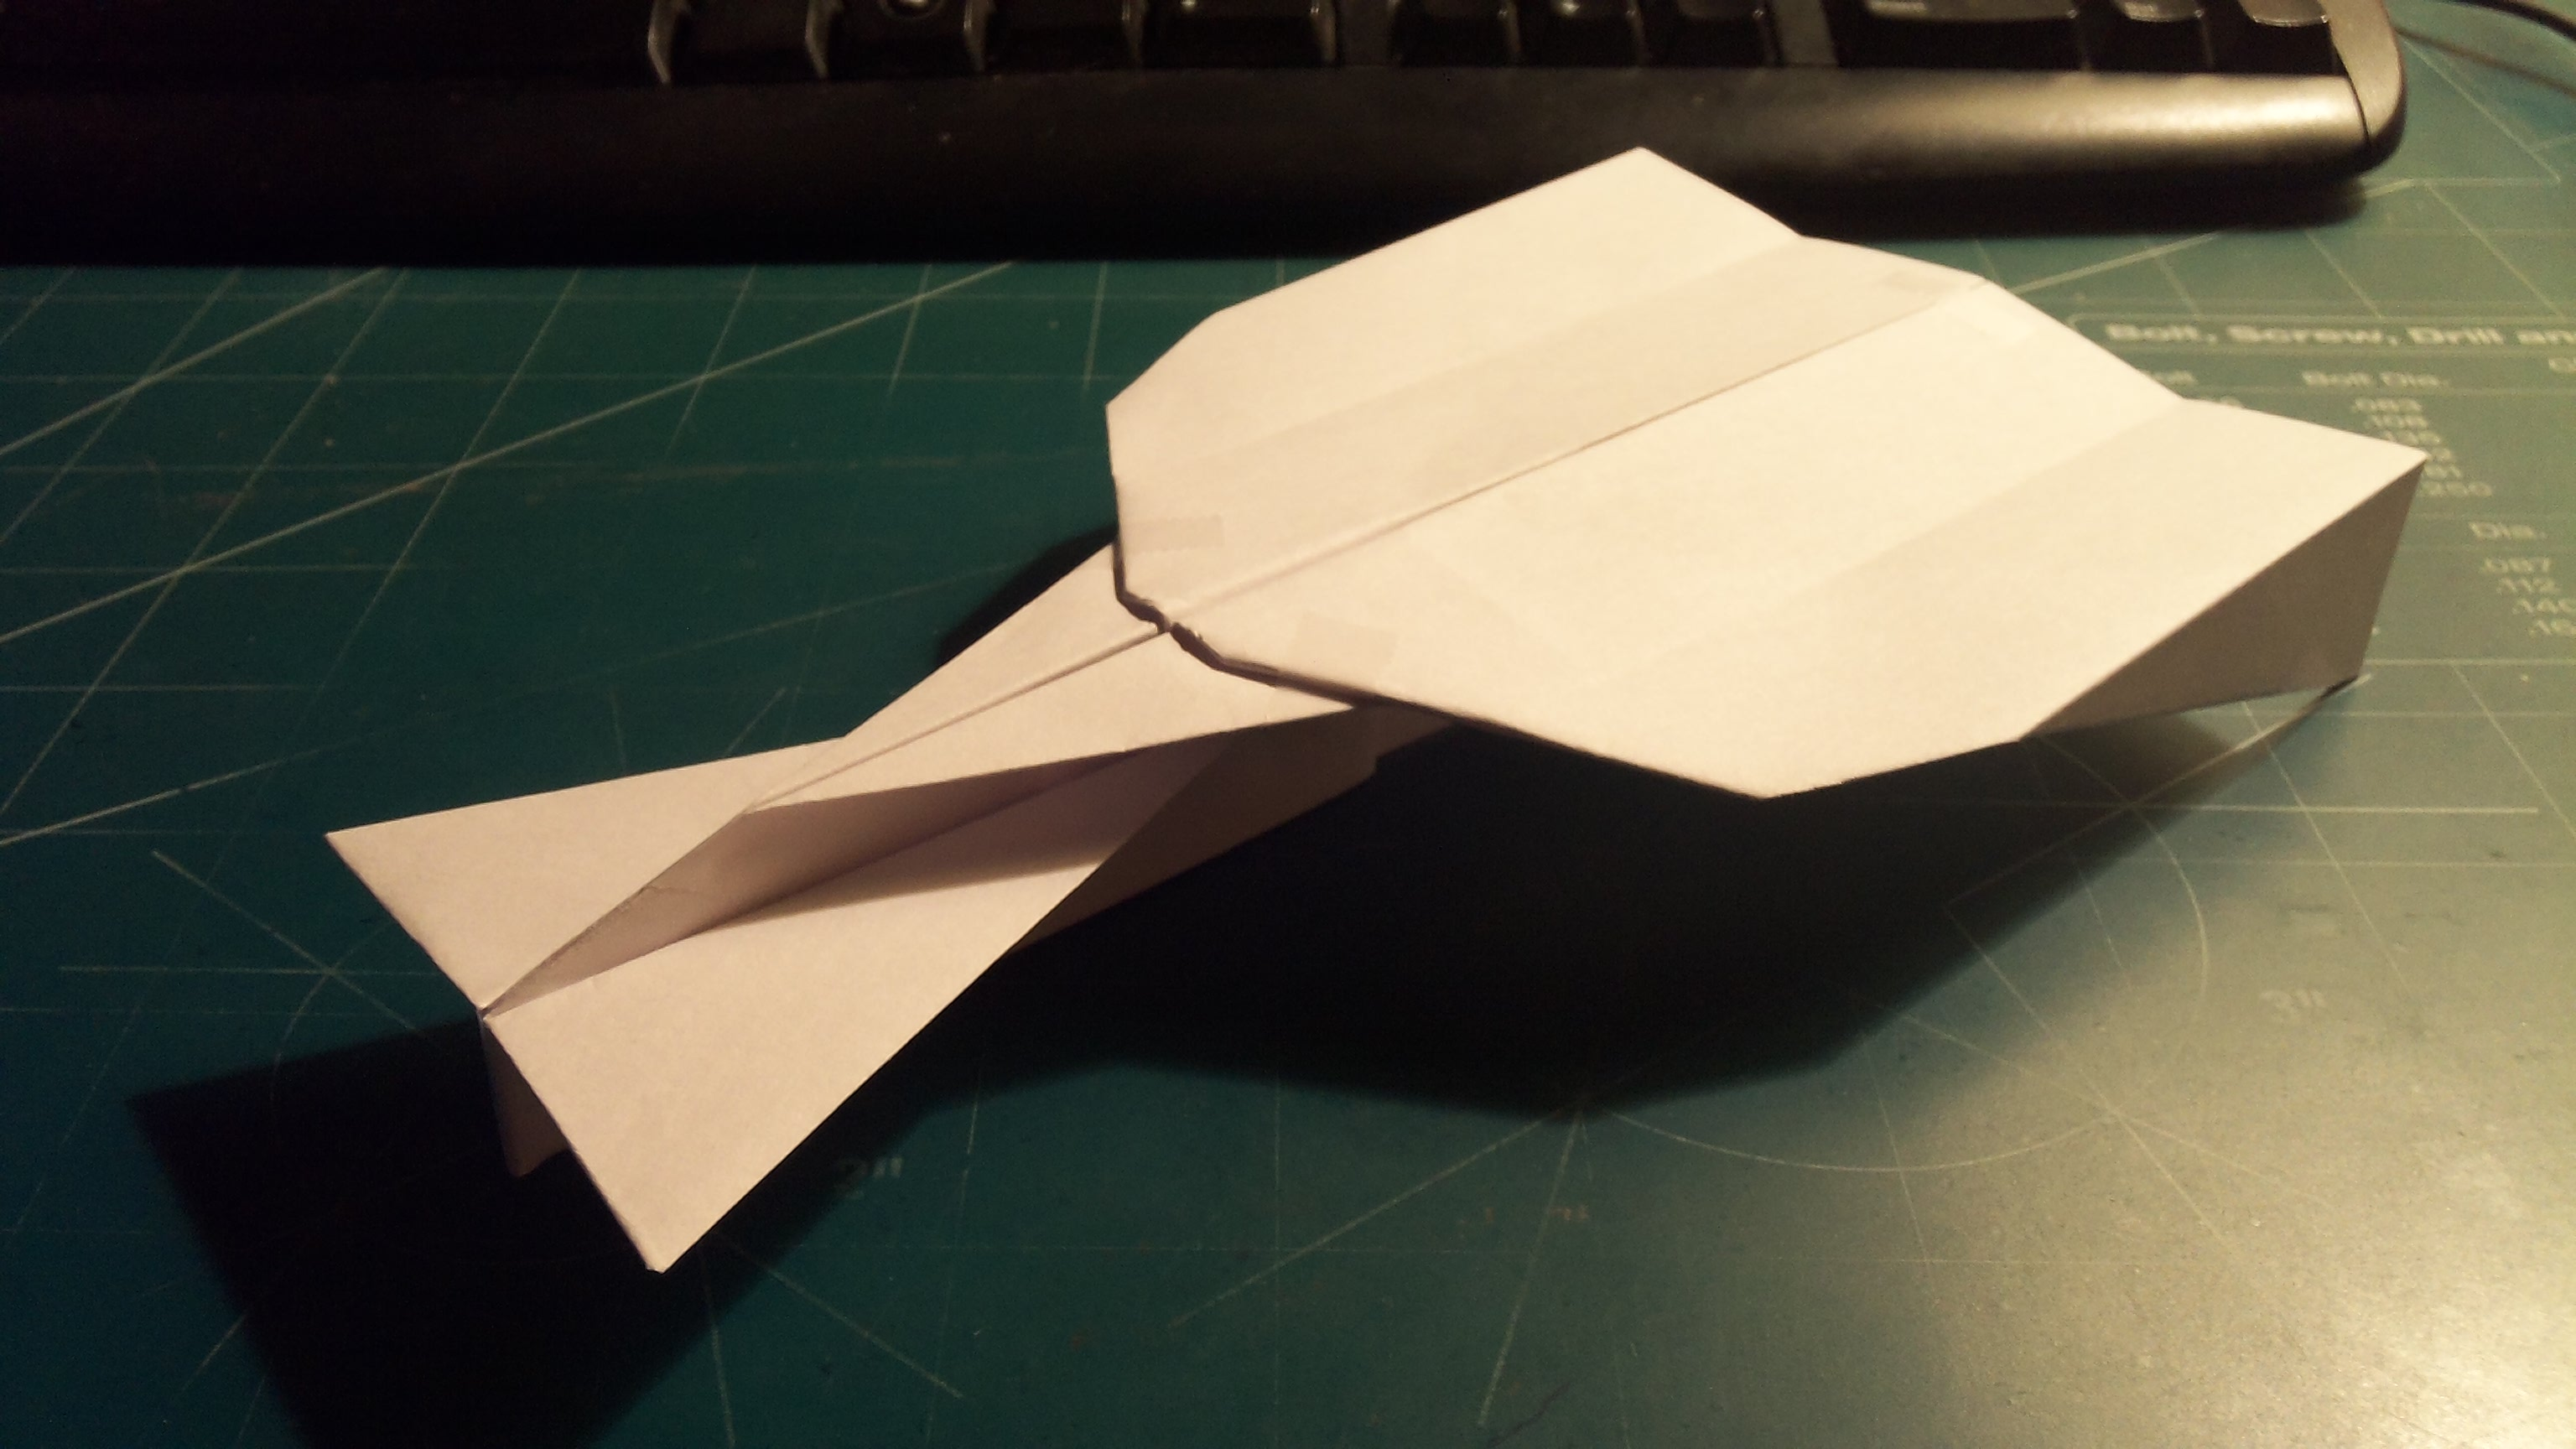 How To Make The Super StratoVulcan Paper Airplane